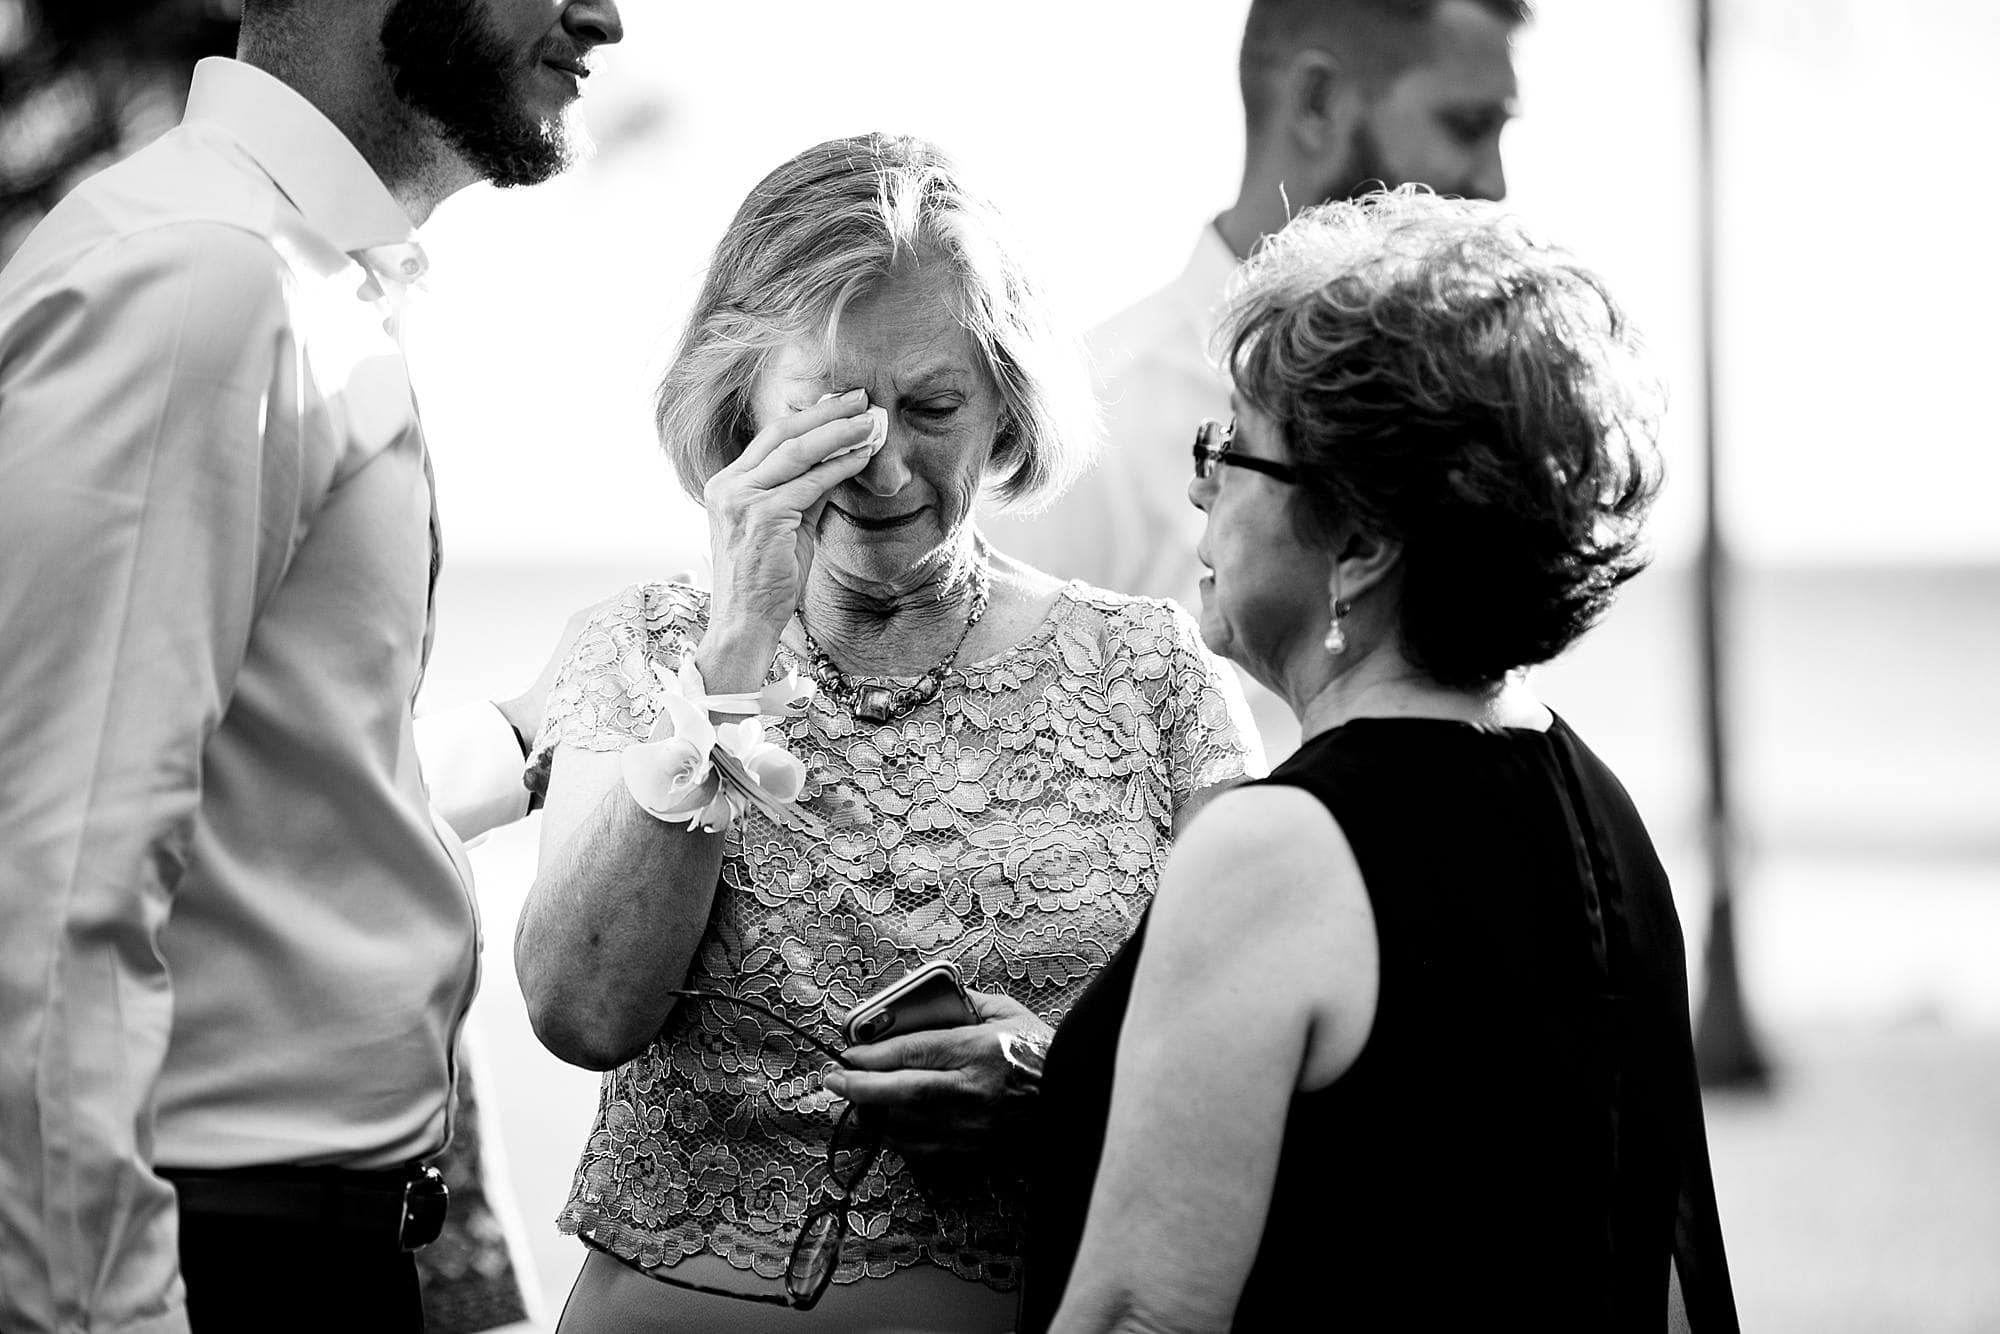 mother of the groom wiping tears